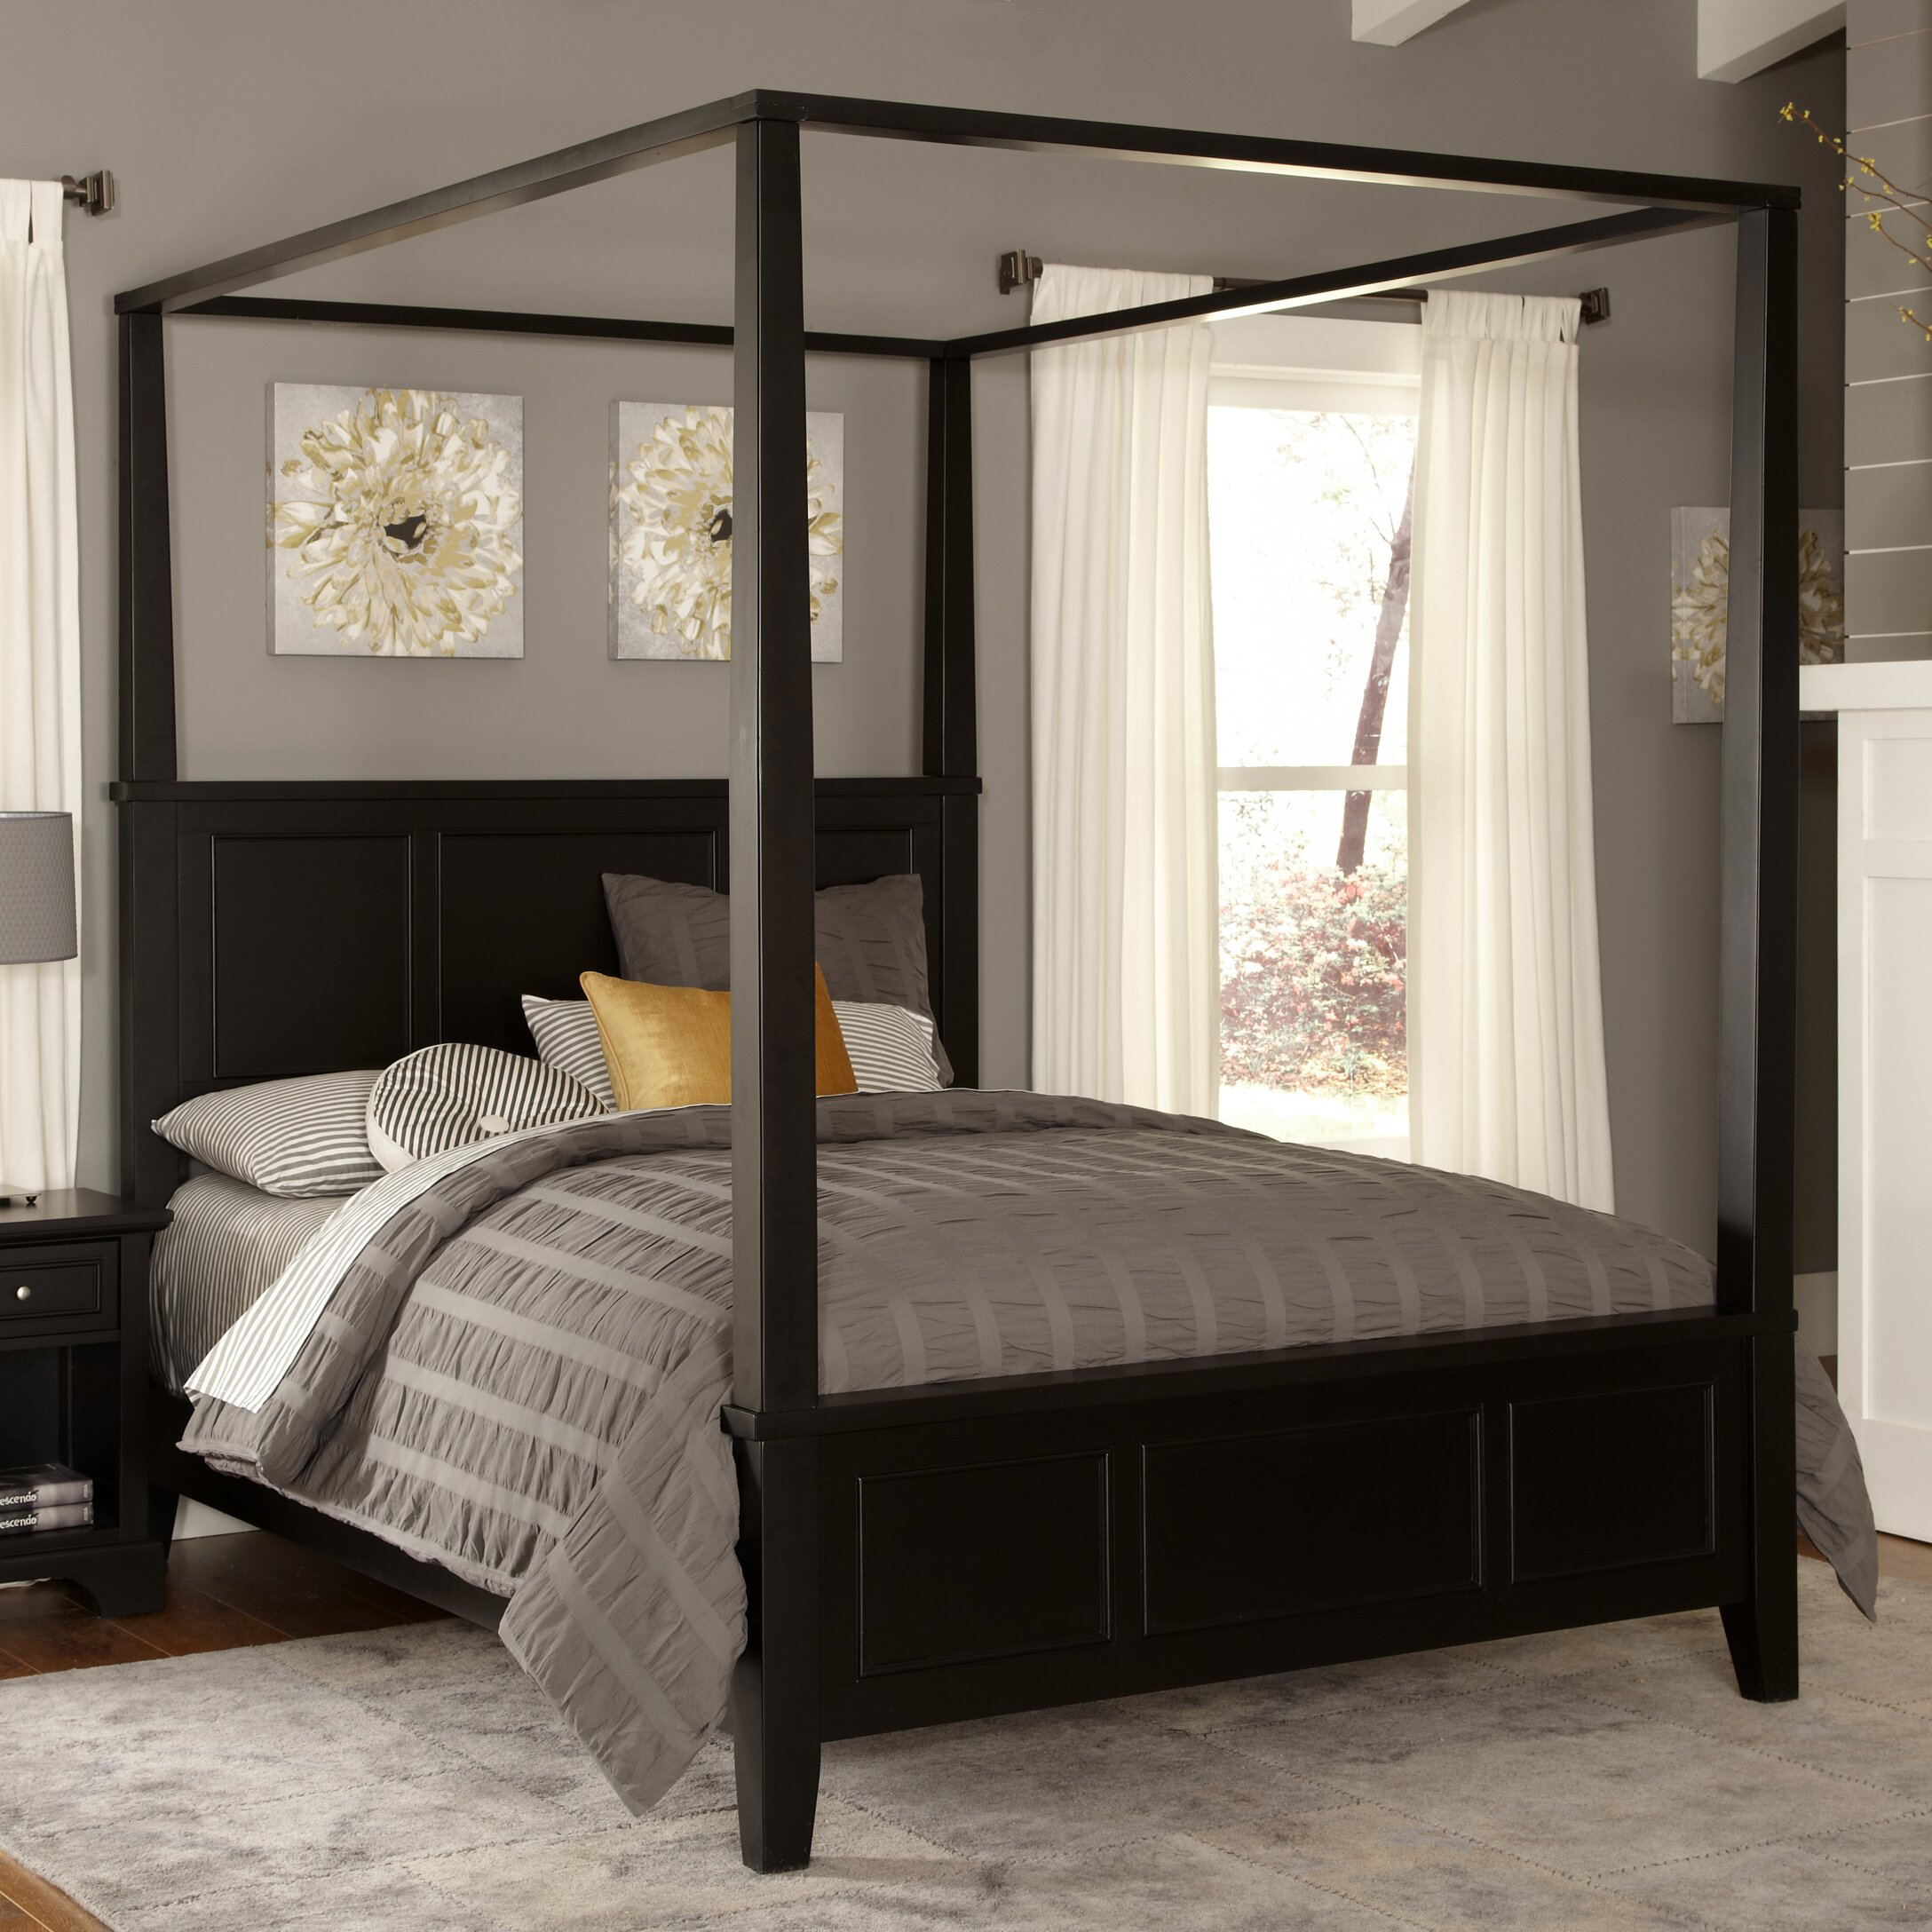 alcott hill marblewood canopy bed